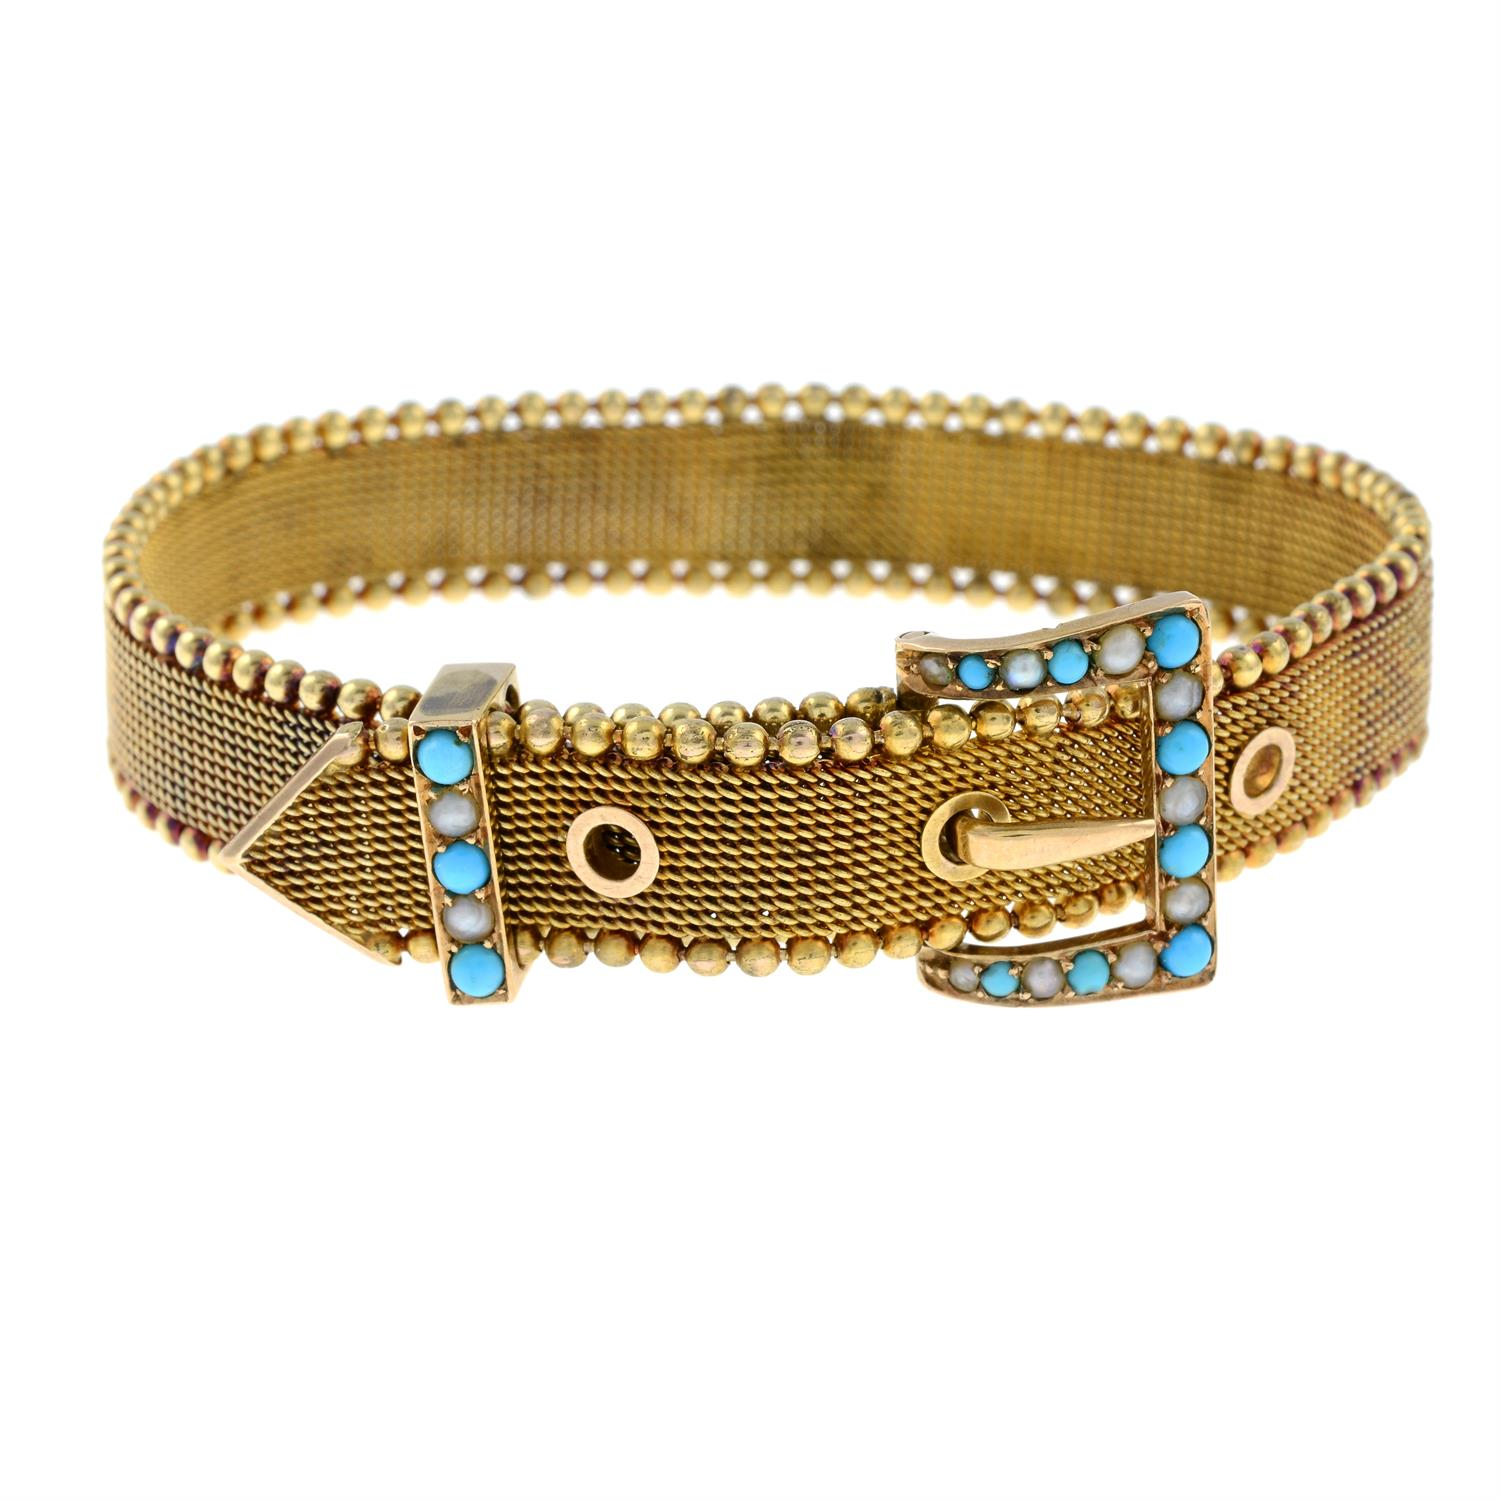 A late Victorian 15ct gold split pearl and turquoise buckle bracelet. - Image 3 of 6